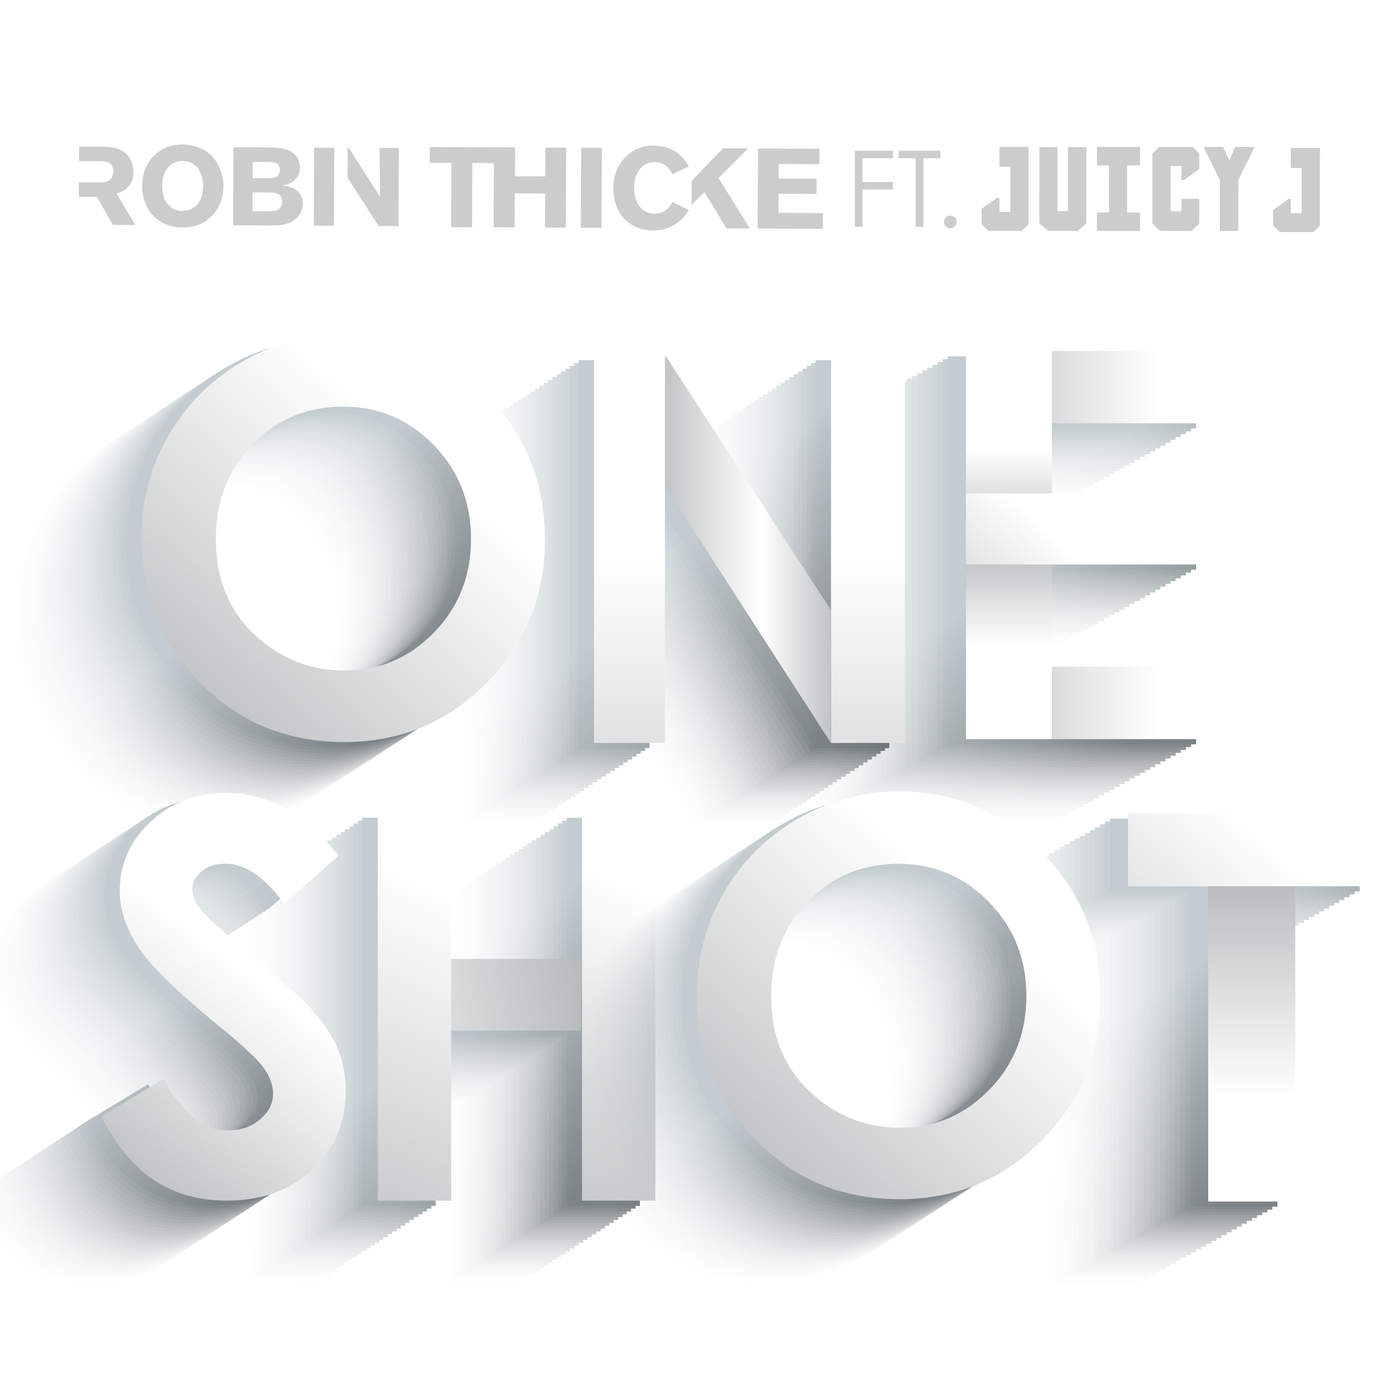 Robin Thicke Feat. Pharrell Williams Pharrell Blurred Lines